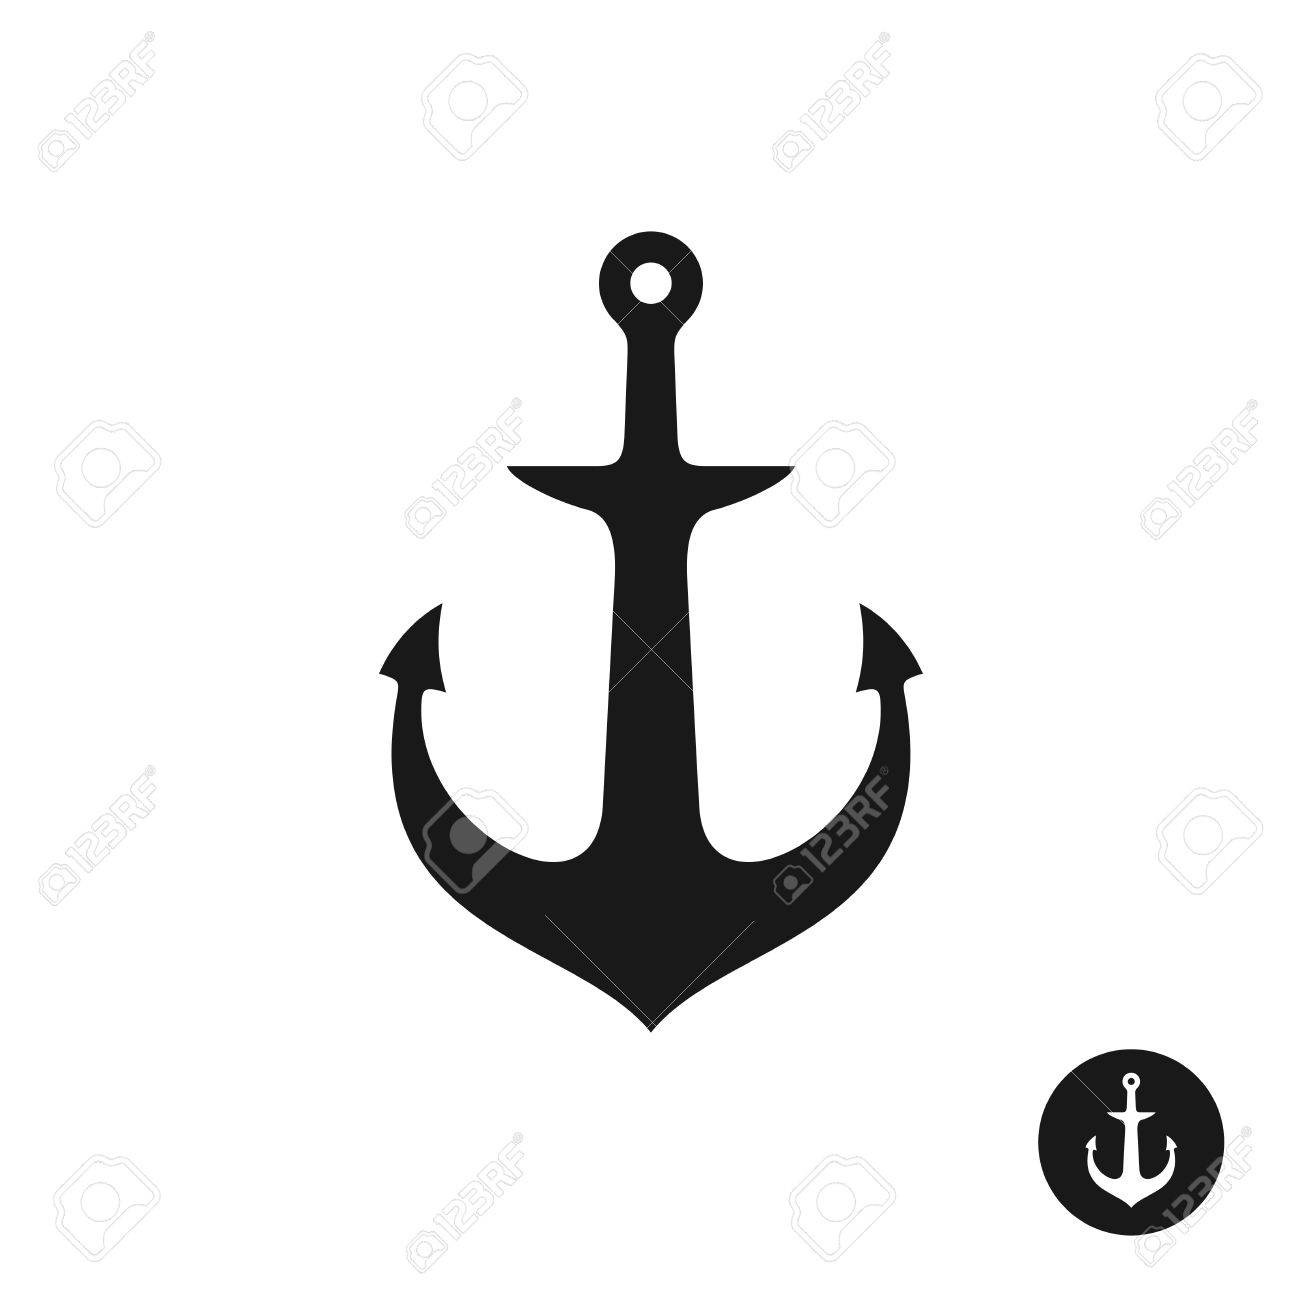 1299x1300 Ship Anchor Simple Black One Piece Silhouette Marine Symbol